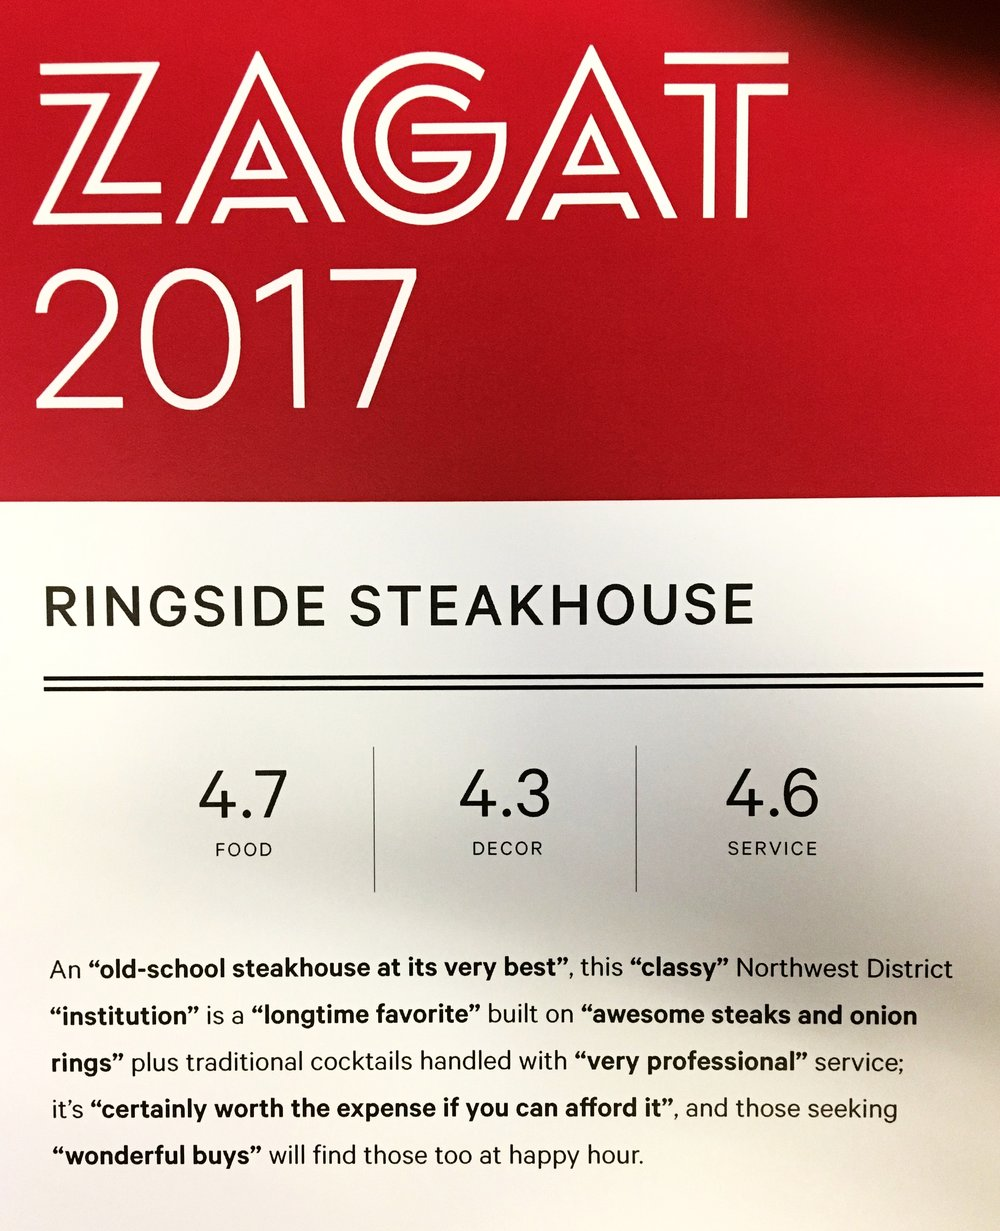 Food, decor, and service ratings    Zagat ratings range from 1 to 5, where 5 is the most favorable rating.    4.6 - 5.0  Extraordinary to perfection    4.1 - 4.5  Very good to excellent    3.1 - 4.0  Good to very good